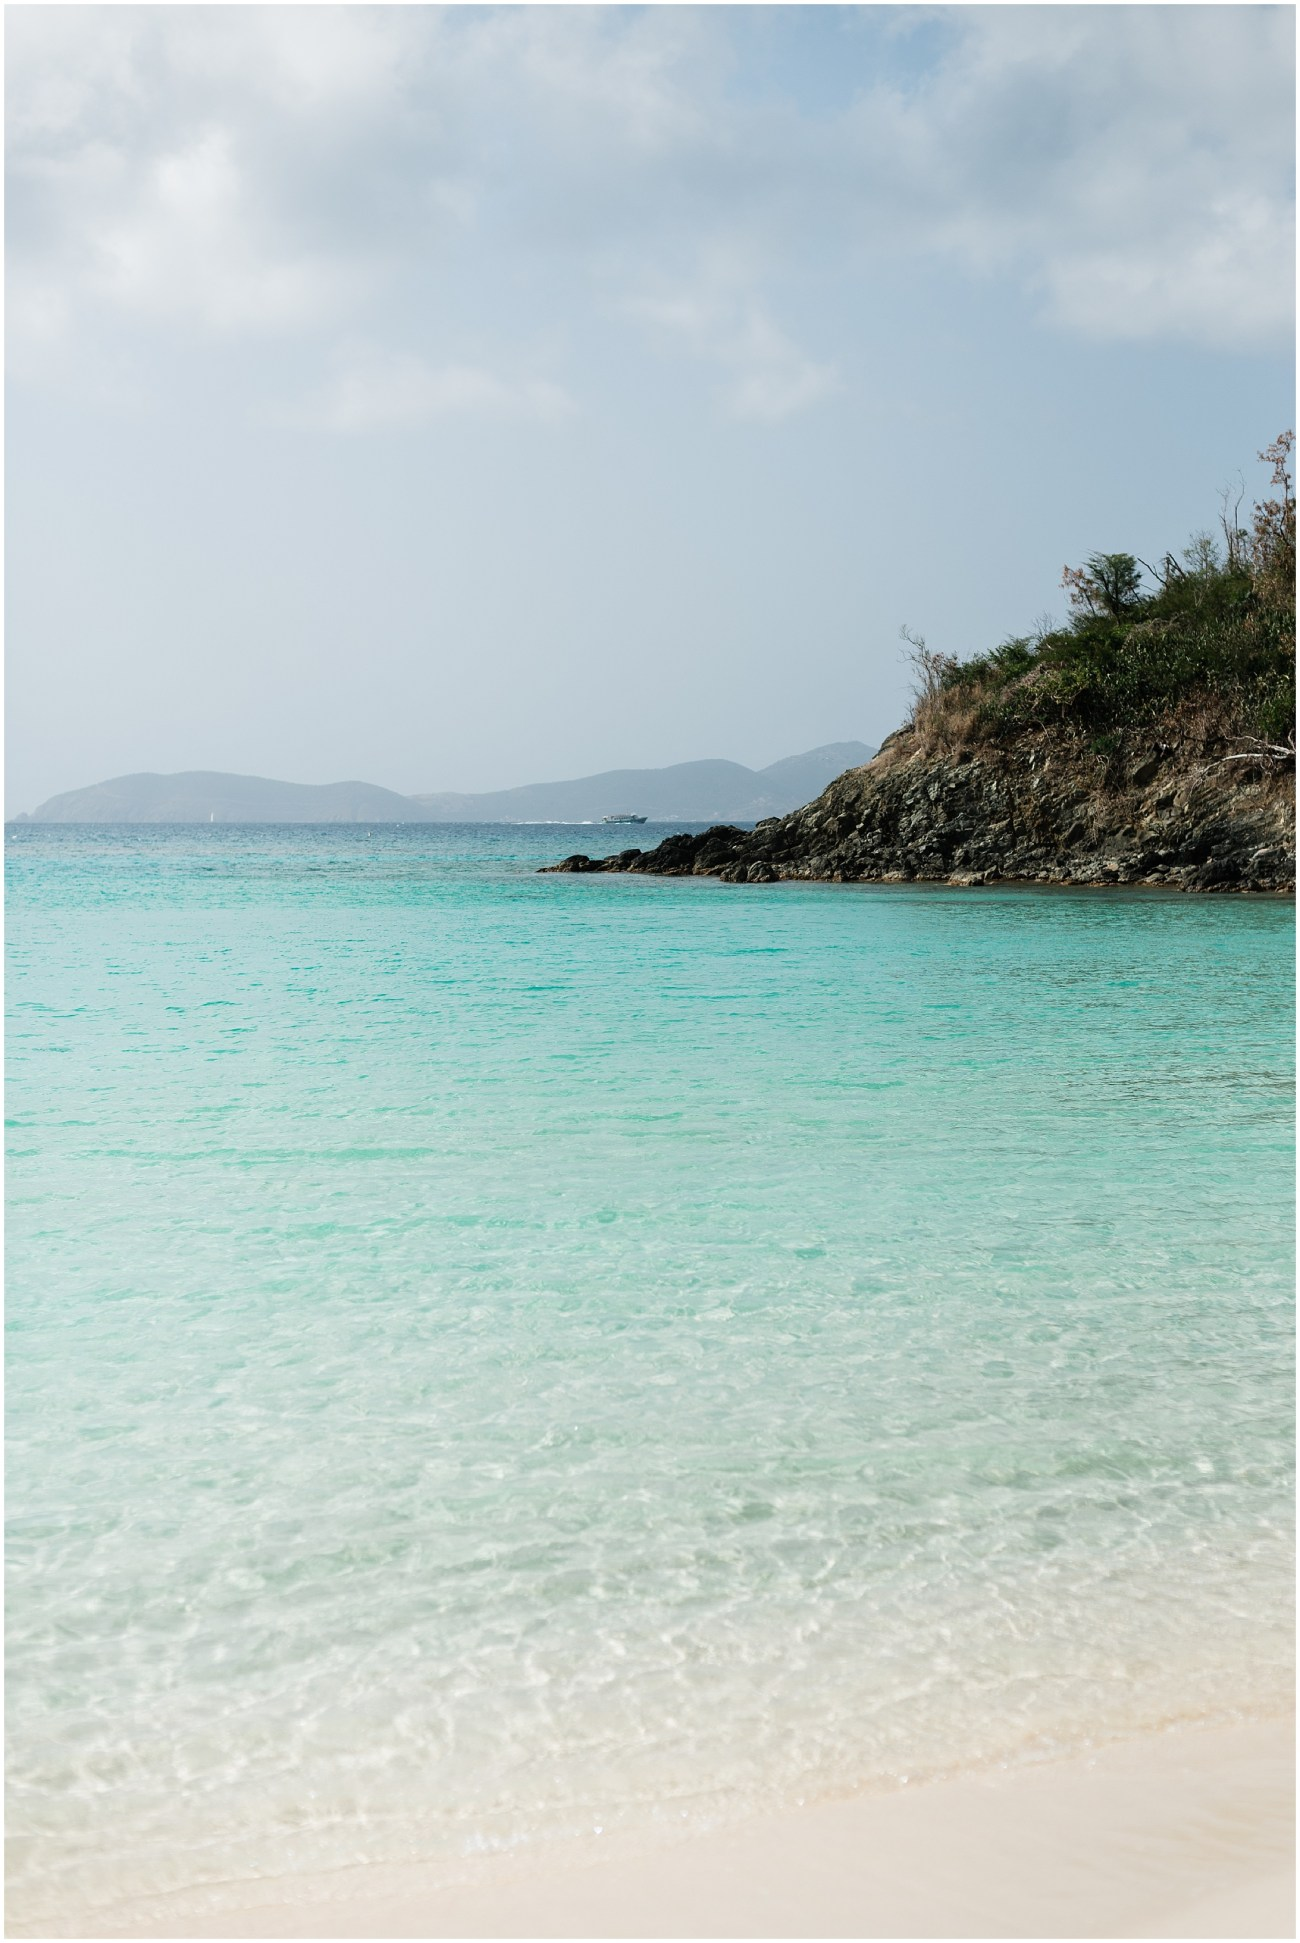 Photo of Trunk Bay Beach in Virgin Islands National Park, St John, USVI